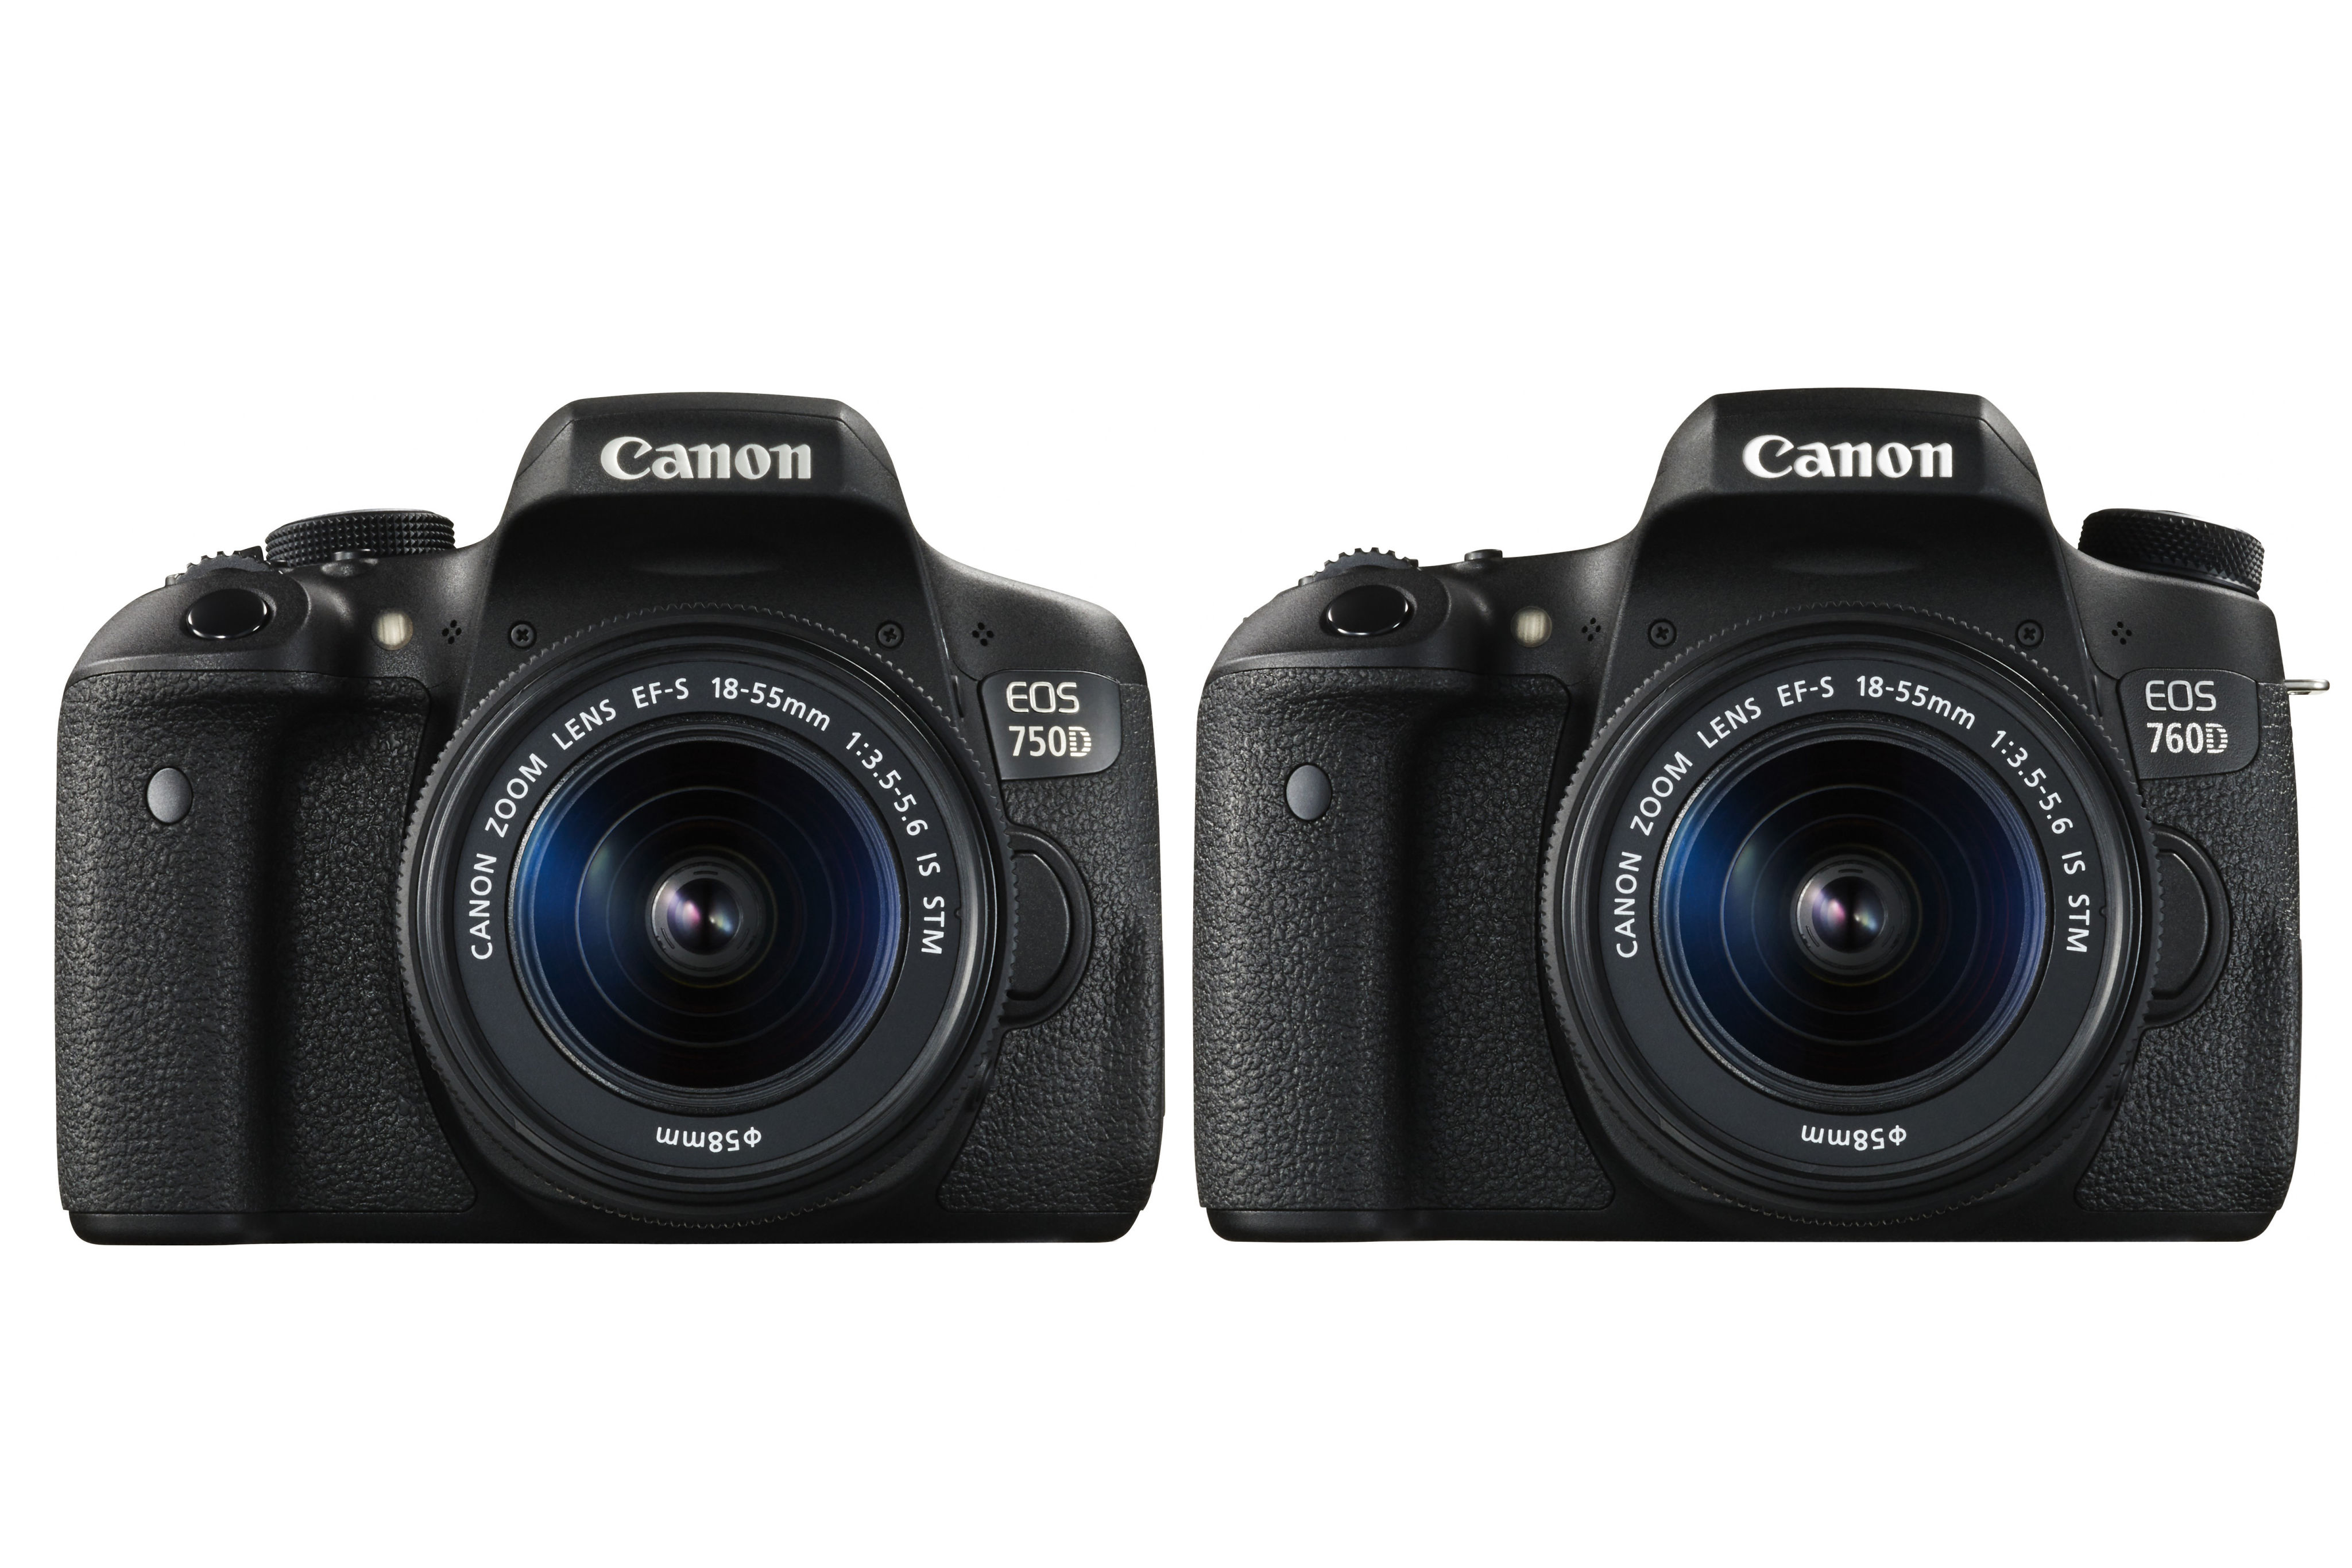 Separated at birth: the Canon EOS 750D (left) looks almost like a mirror image of its sibling the EOS 760D